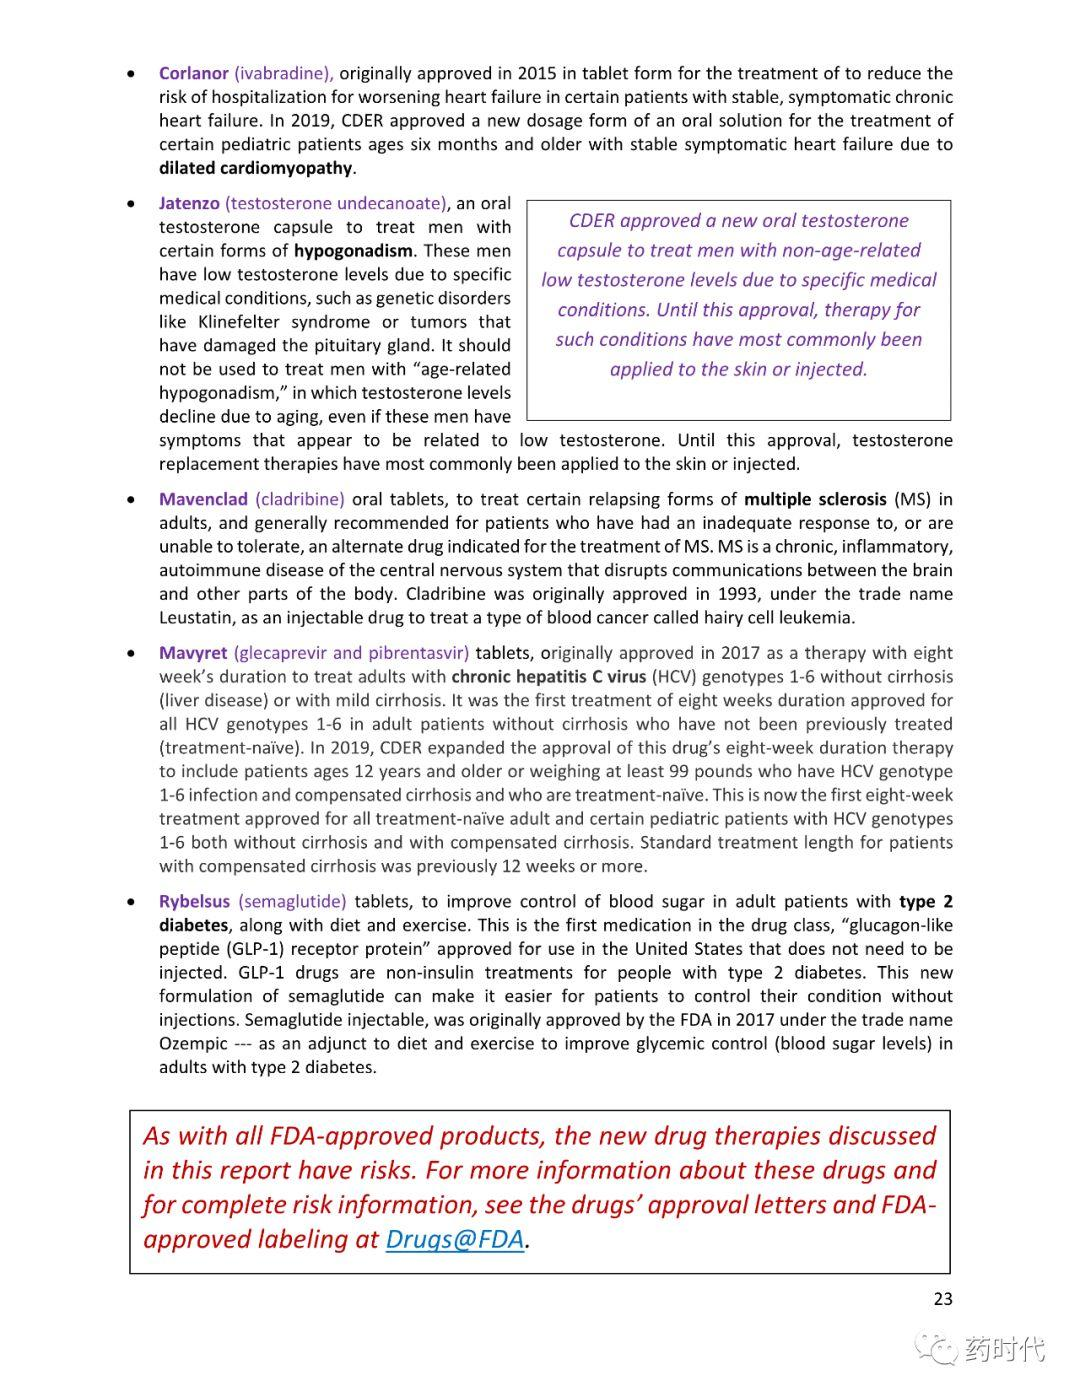 FDA官宣 | 2019年新药批准报告(2019 New Drug Therapy Approvals)